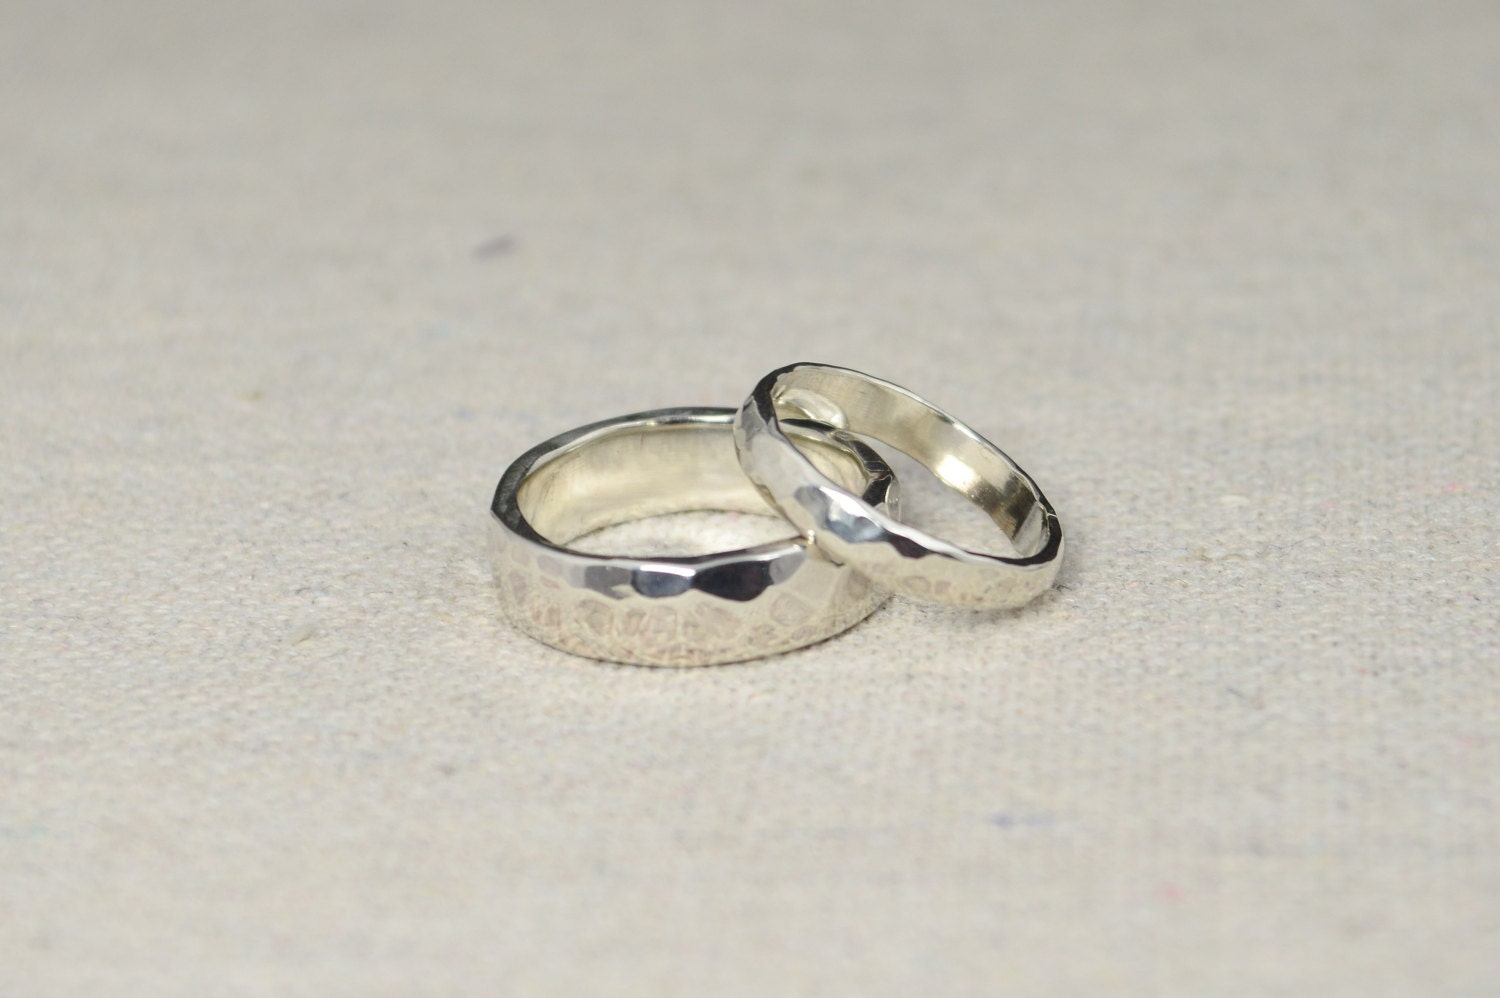 Hammered Silver Wedding Bands Rustic Rings Ring Set Sterling Inside Engraving Included Inexpensive